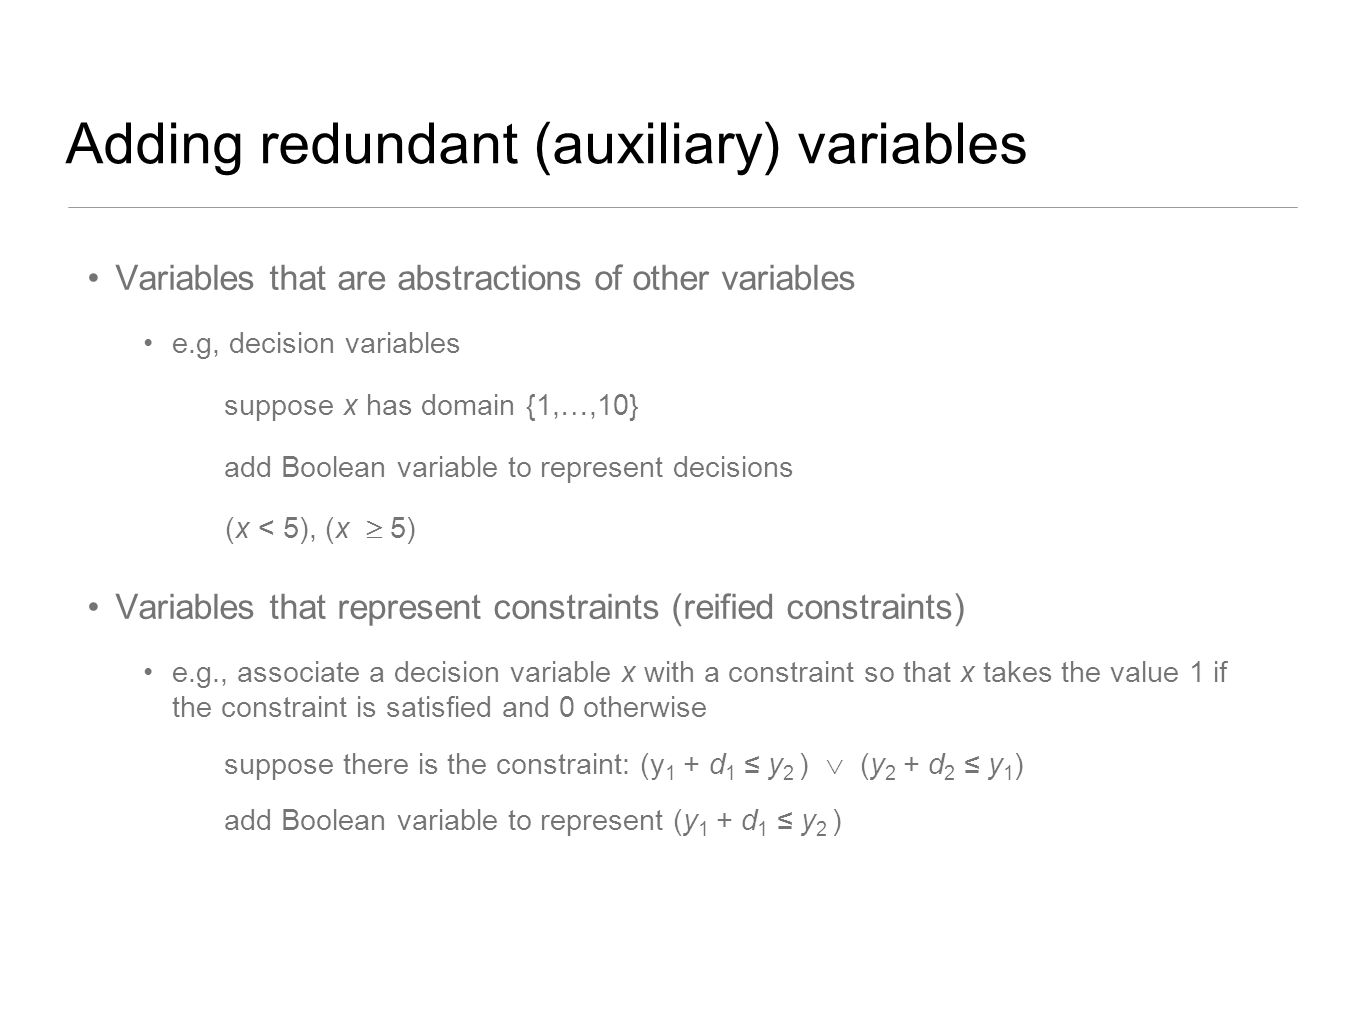 Adding redundant (auxiliary) variables